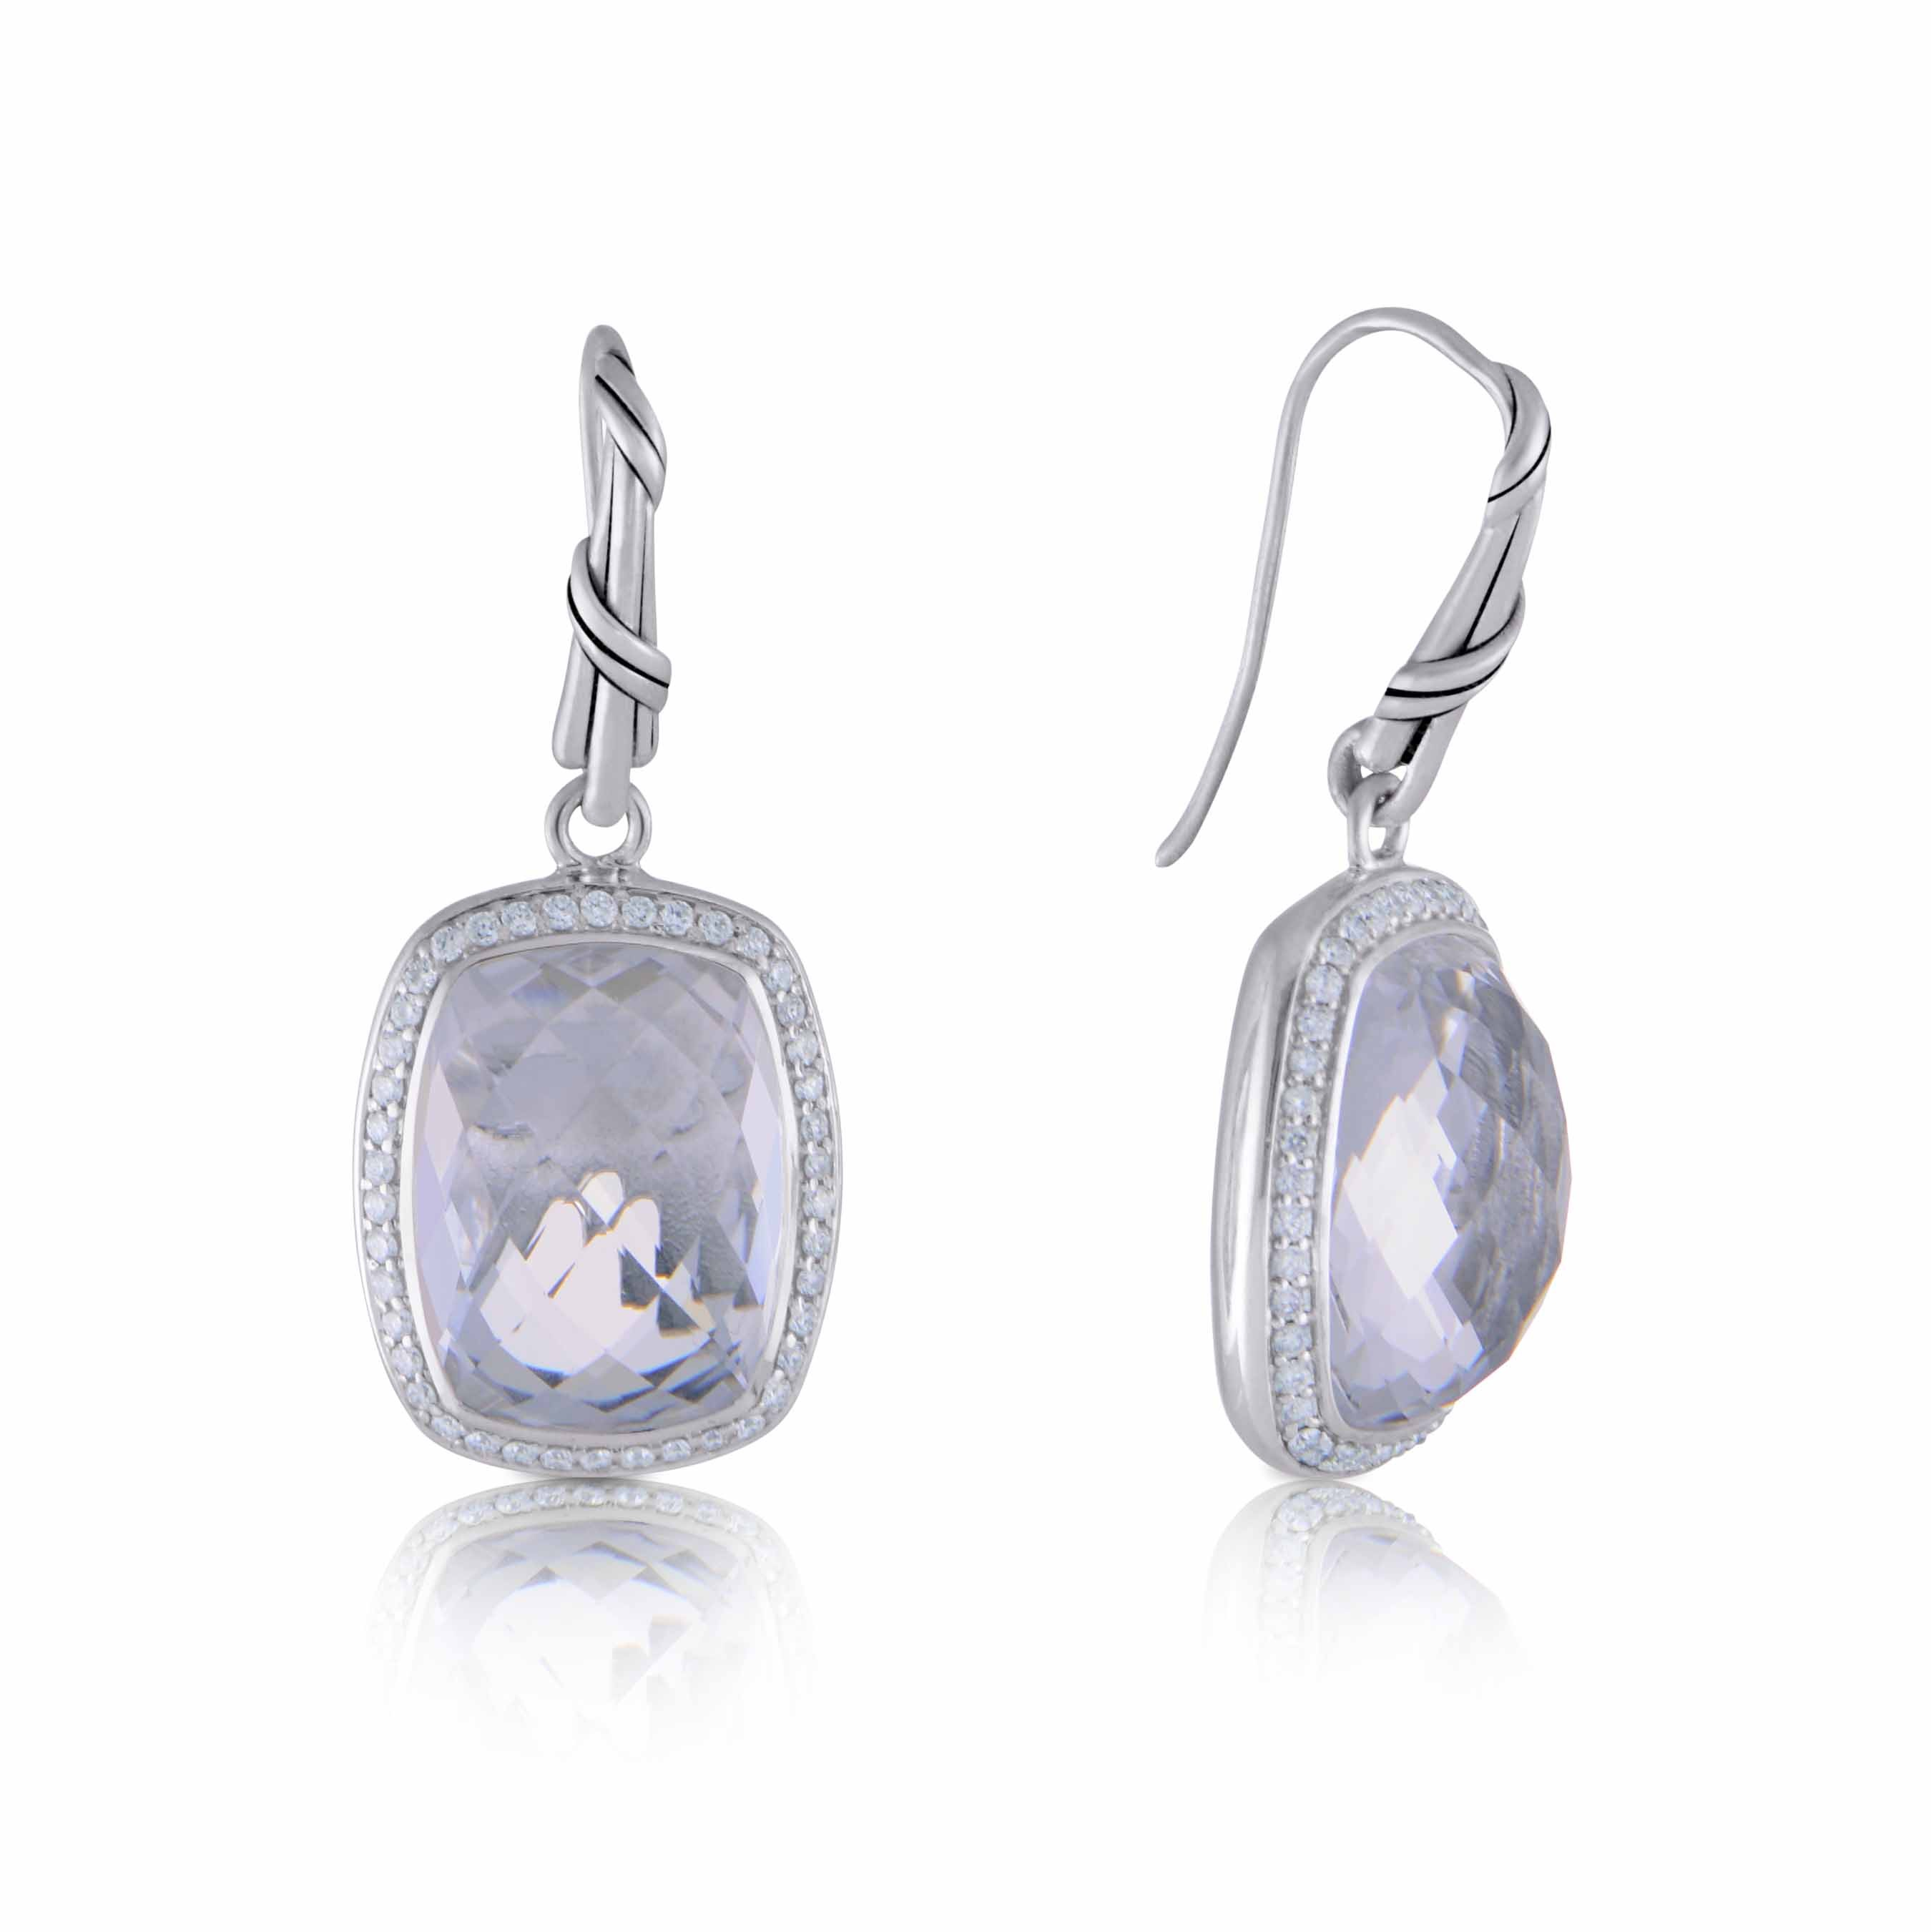 Fantasies Rock Crystal Halo Earrings in diamonds and sterling silver